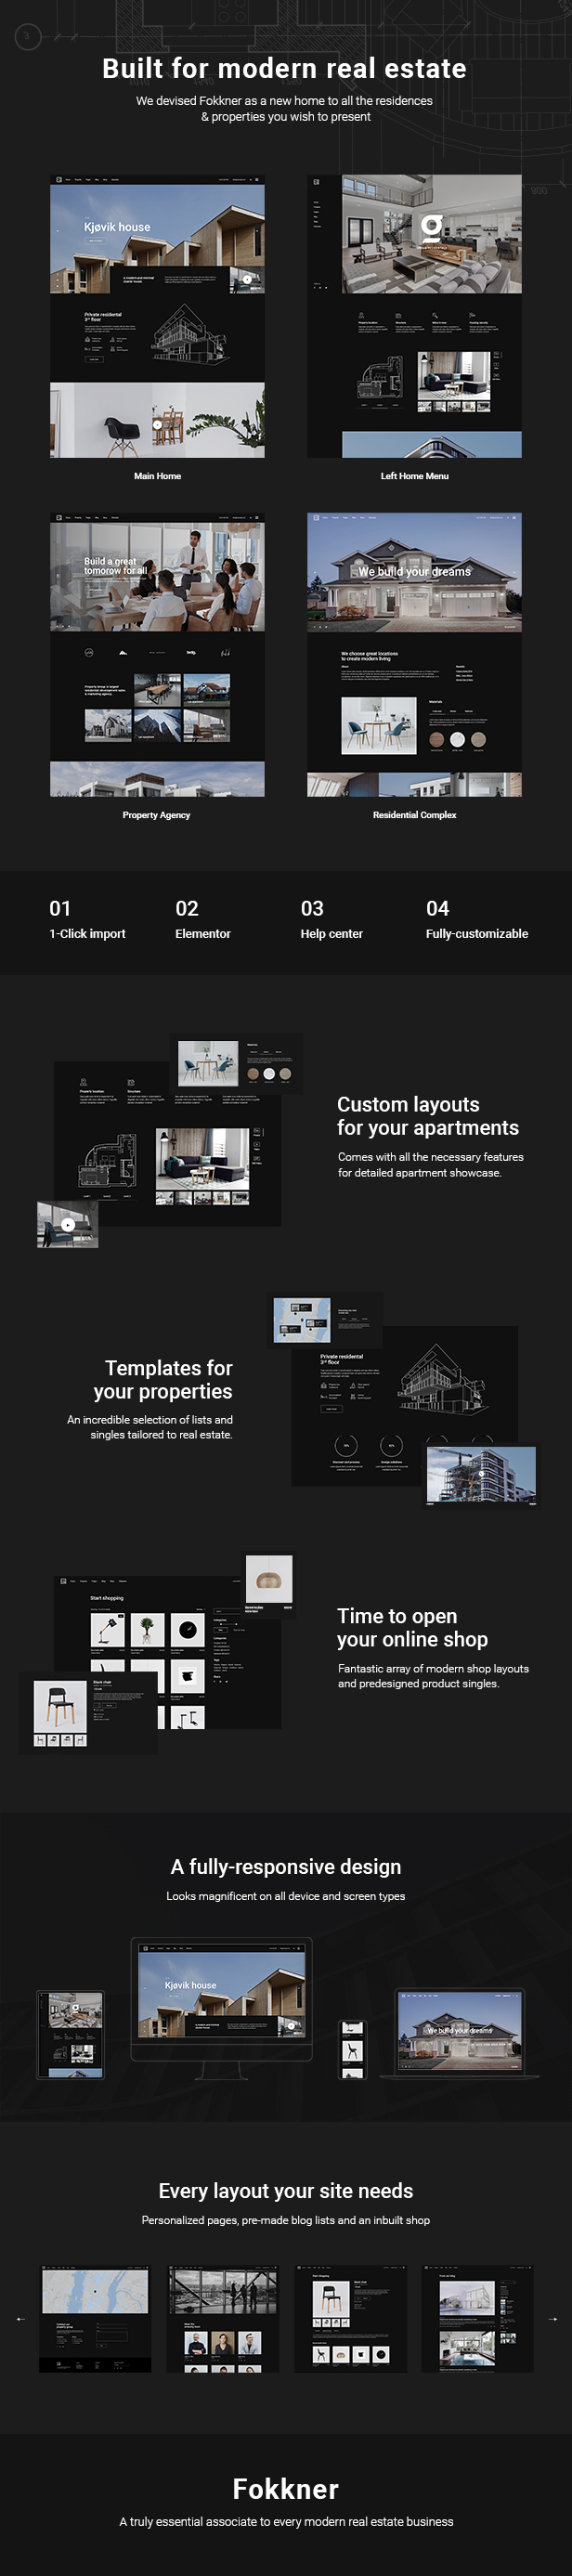 Fokkner - Real Estate and Property Theme - 2